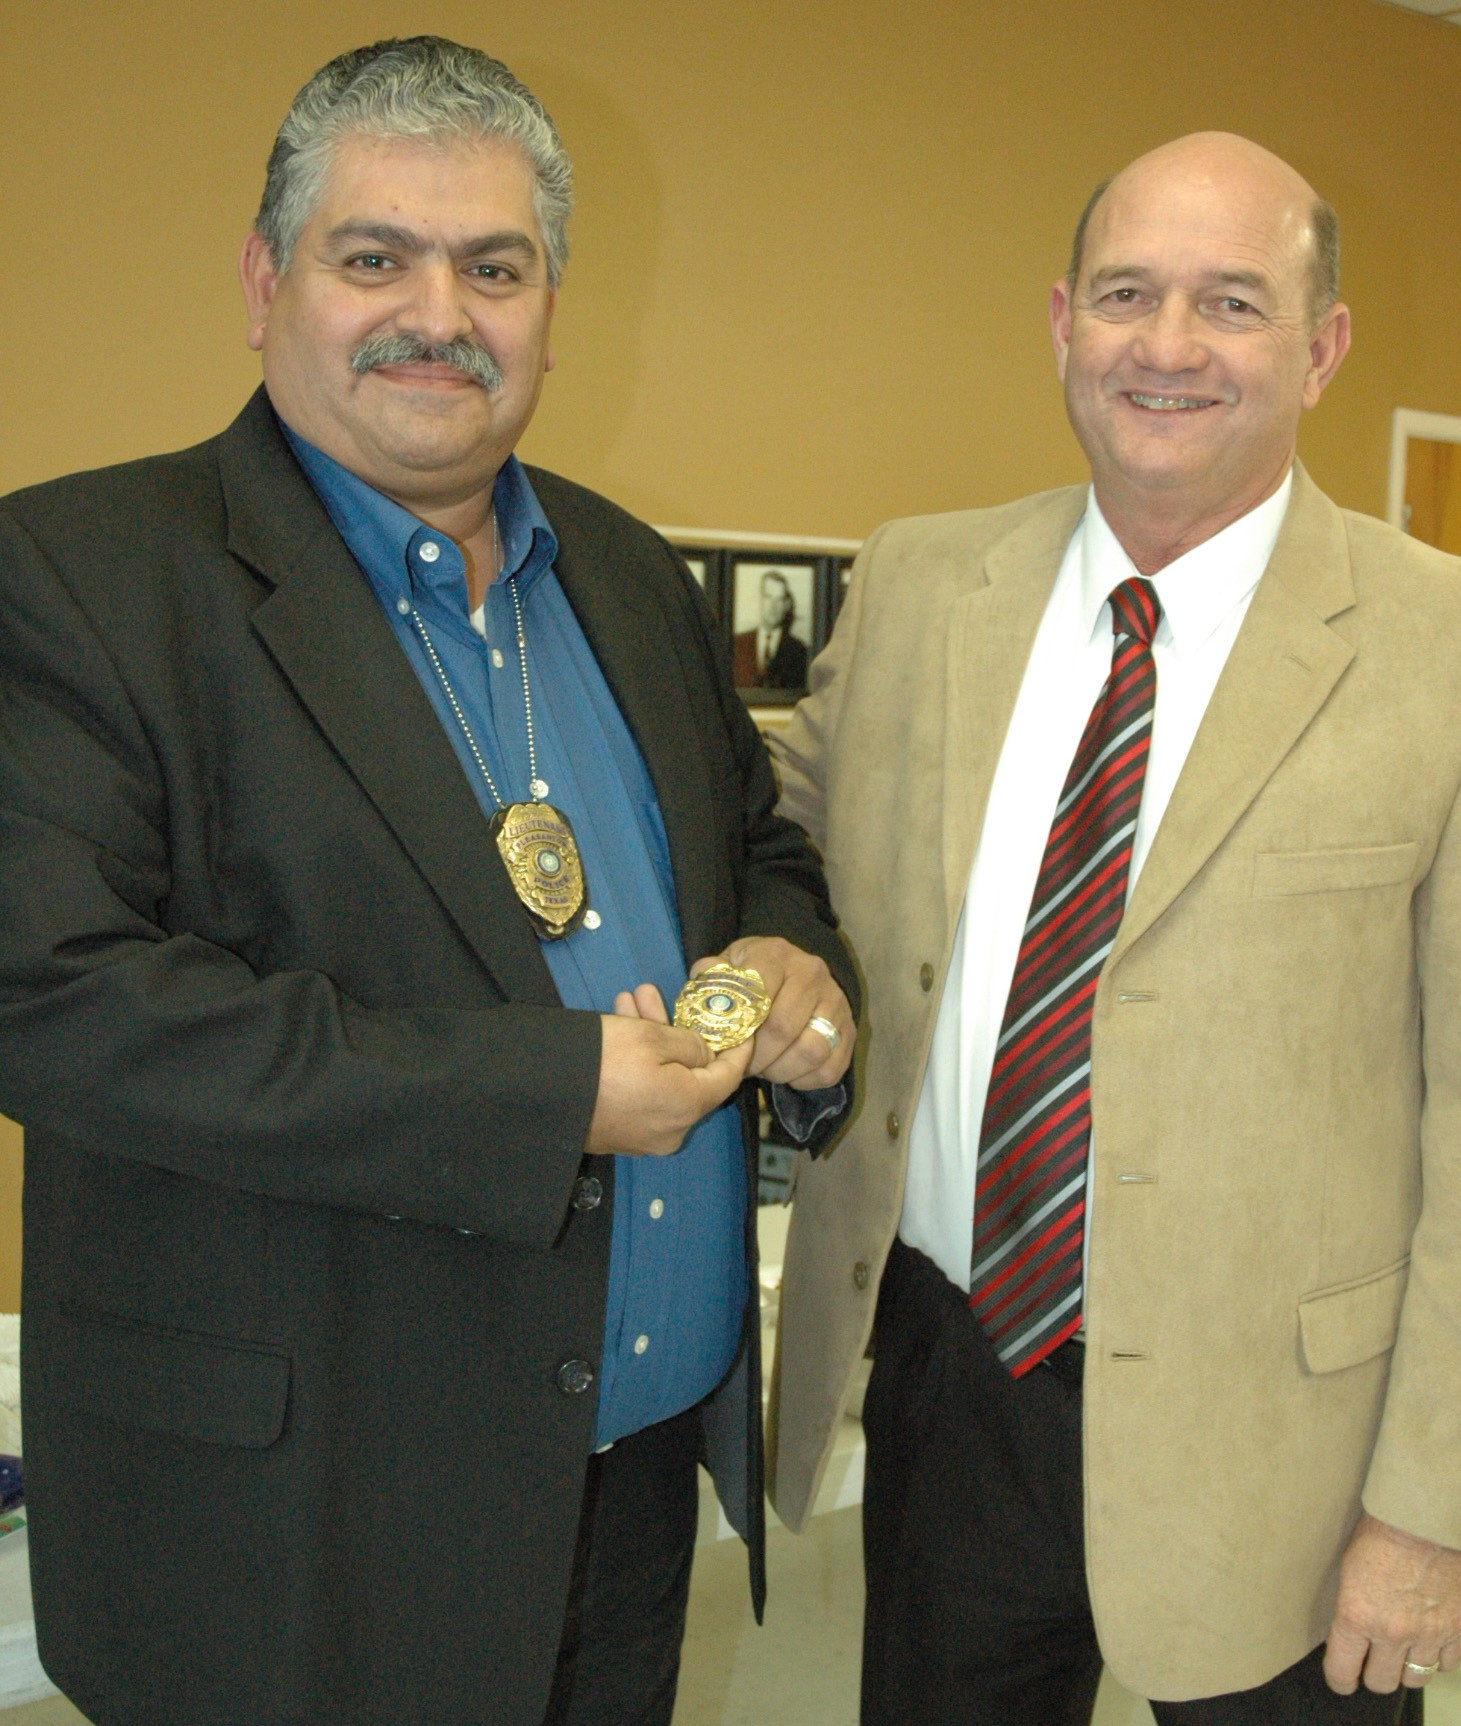 Pleasanton City Manager Bruce Pearson (right) presents the Chief of Police badge to Ronald Sanchez during the annual Christmas luncheon held December 5.